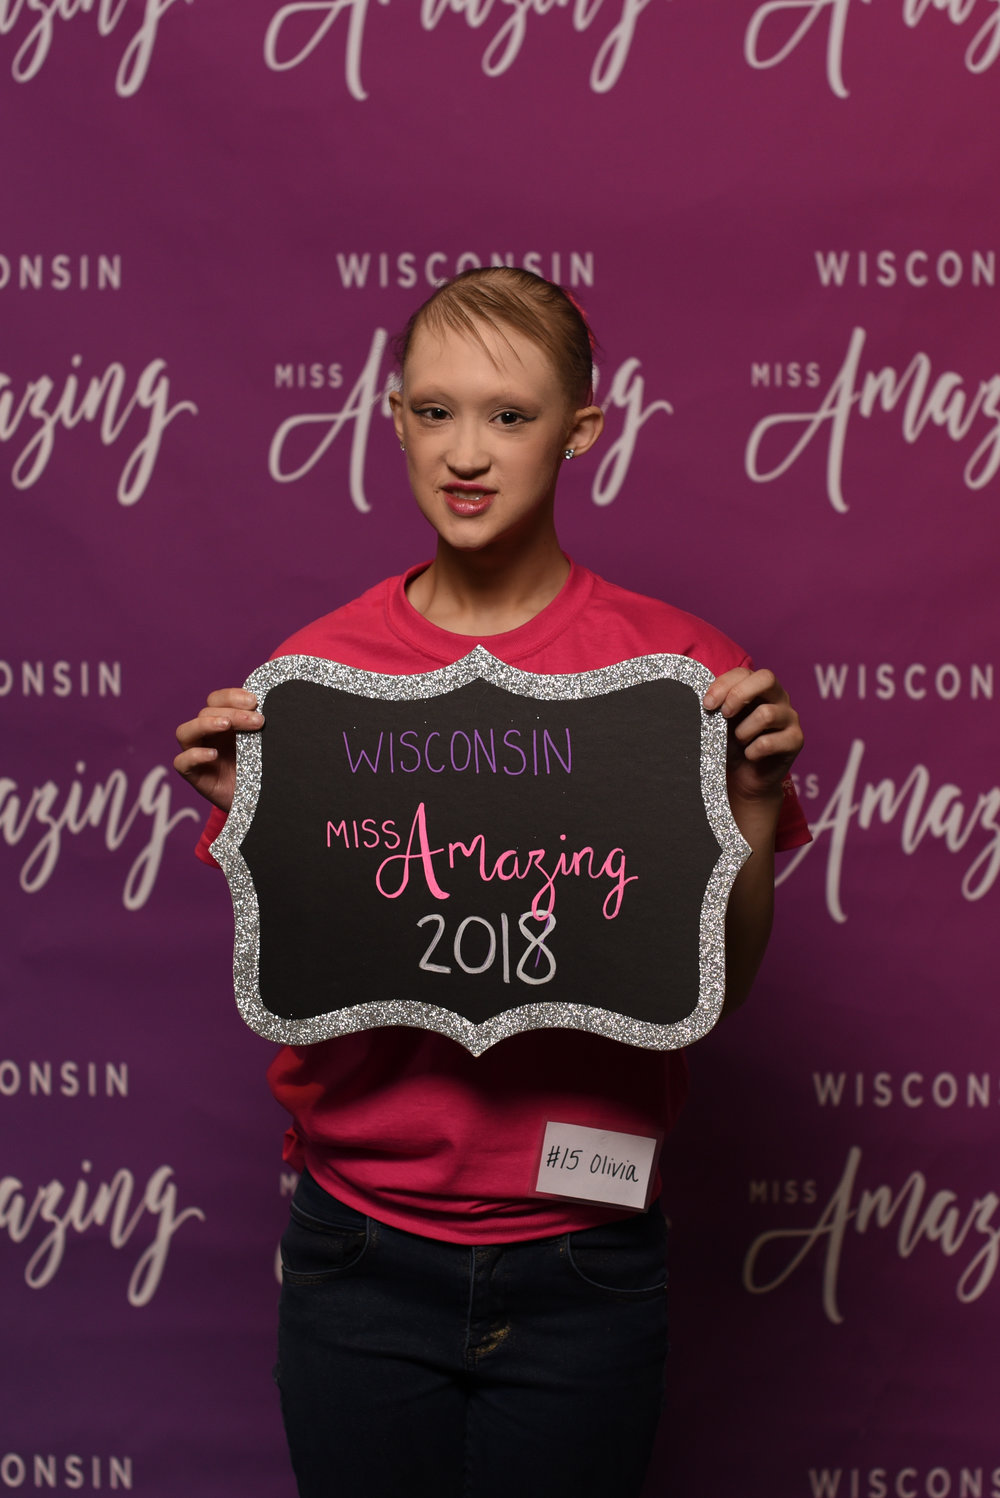 Wisconsin Miss Amazing Teen  |  Olivia   Click to read more about Olivia!